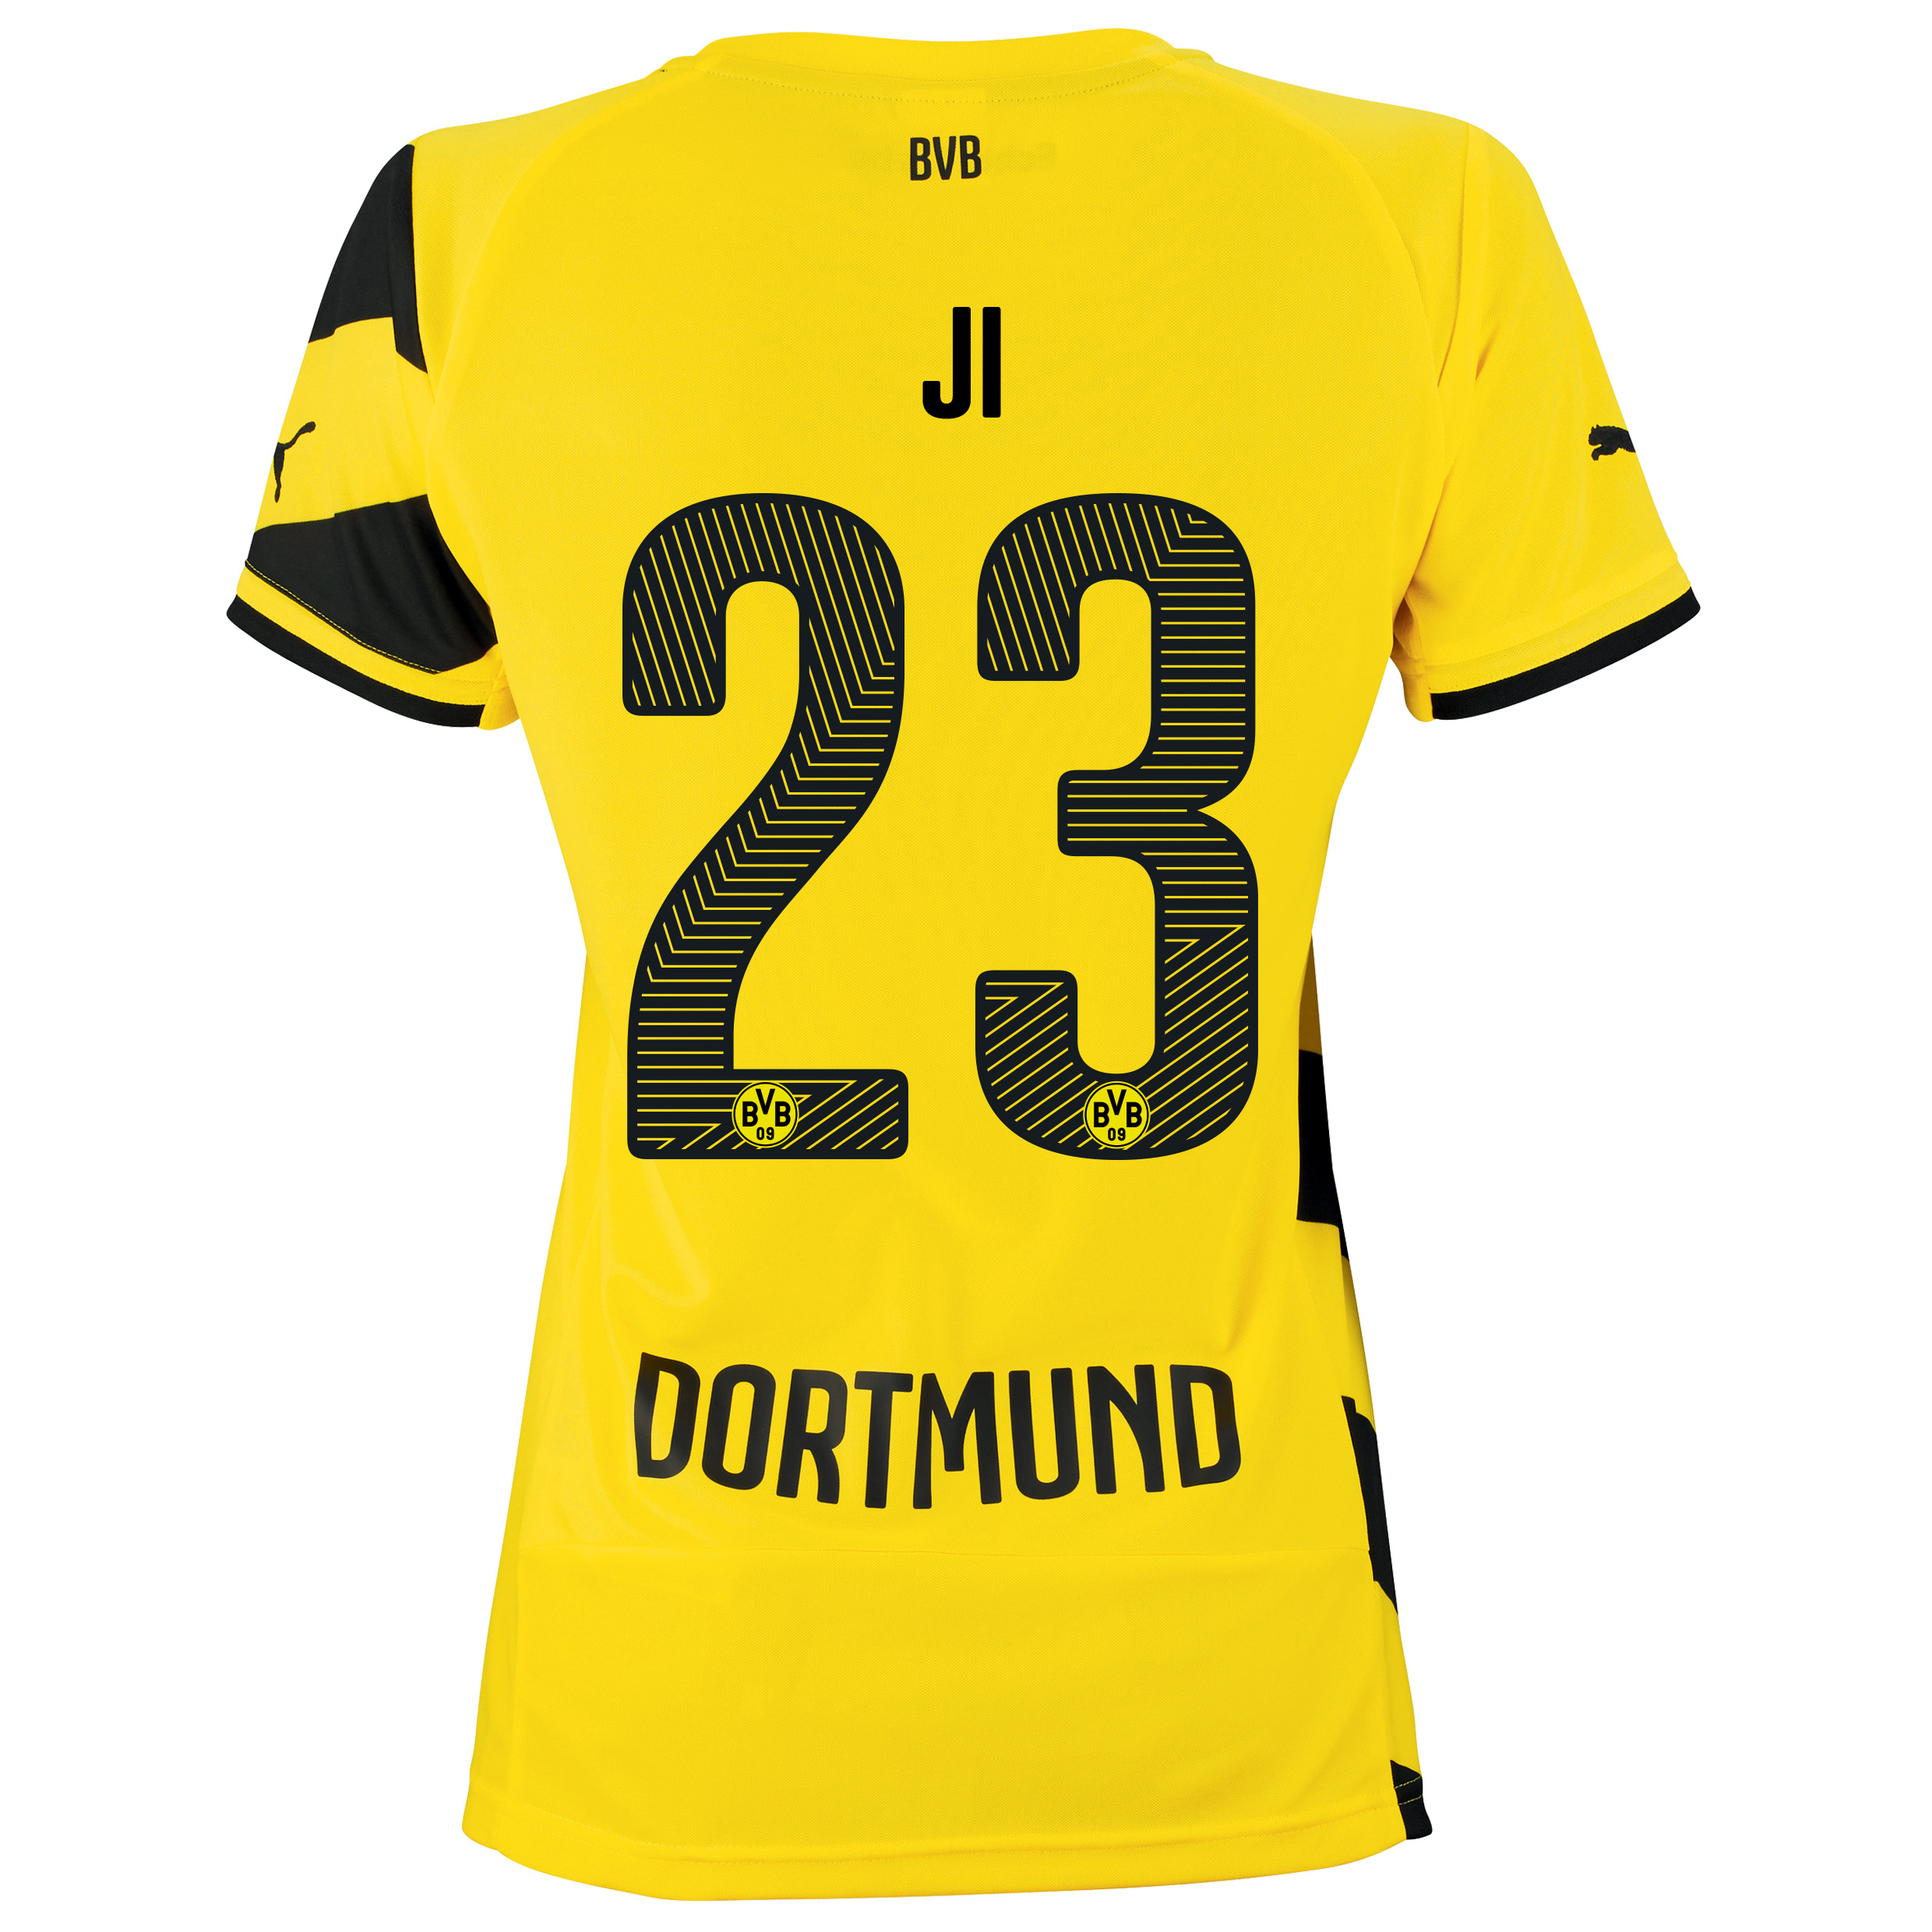 BVB Home Shirt 2014/15 - Womens with Dong-Won Ji 23 printing